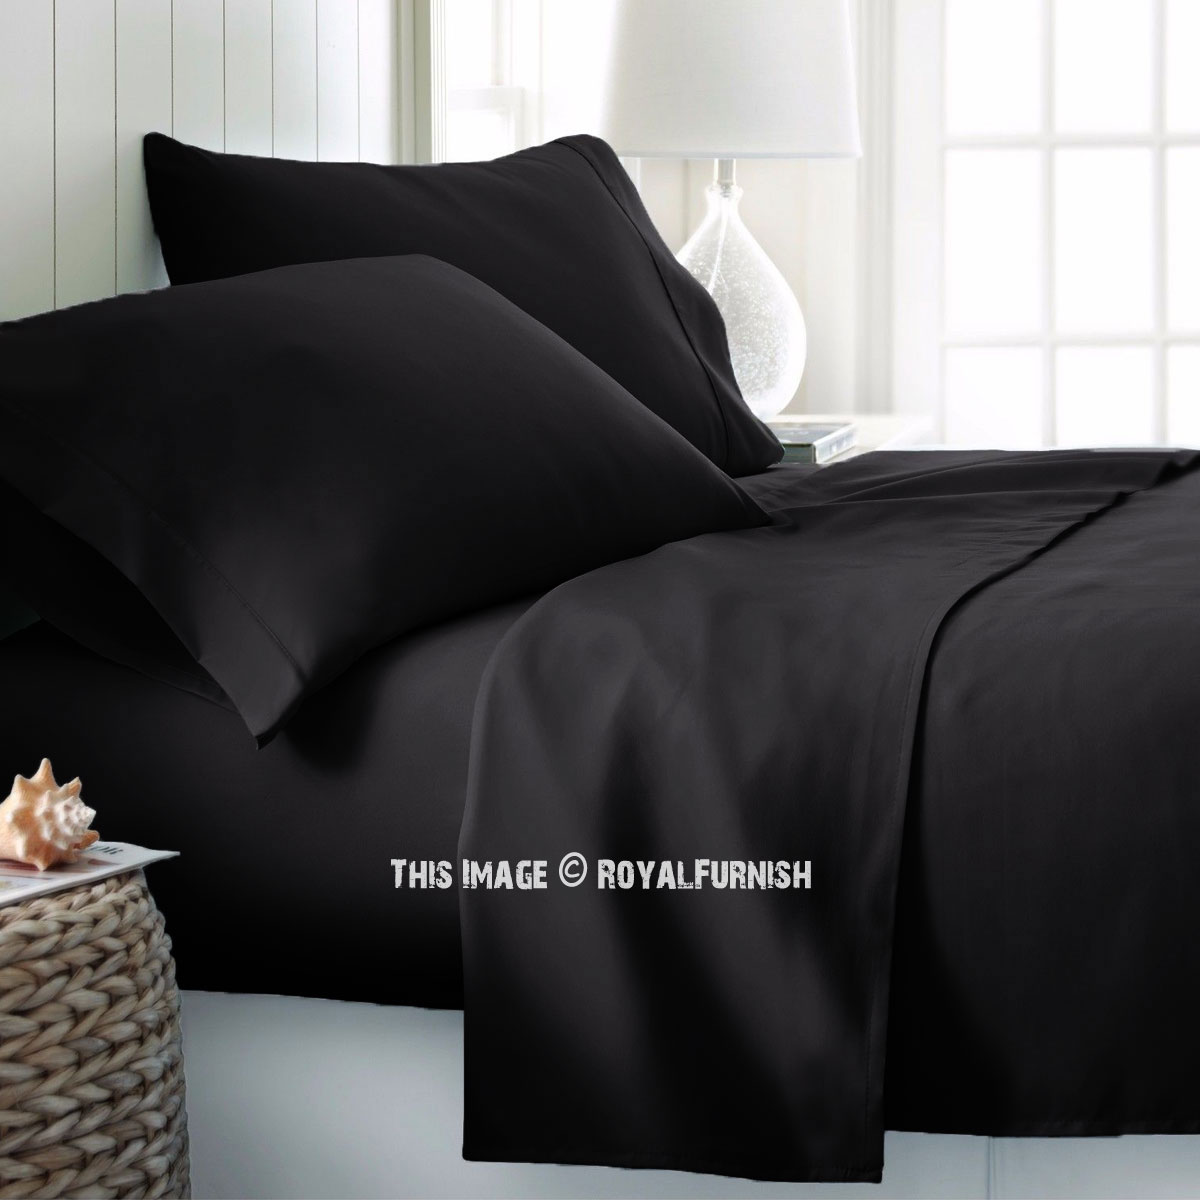 Black 4pc Cotton Bed Sheet Set 1 Flat Sheet 1 Fitted Sheet And 2 Pillowcases 300 Tc Royalfurnish Com